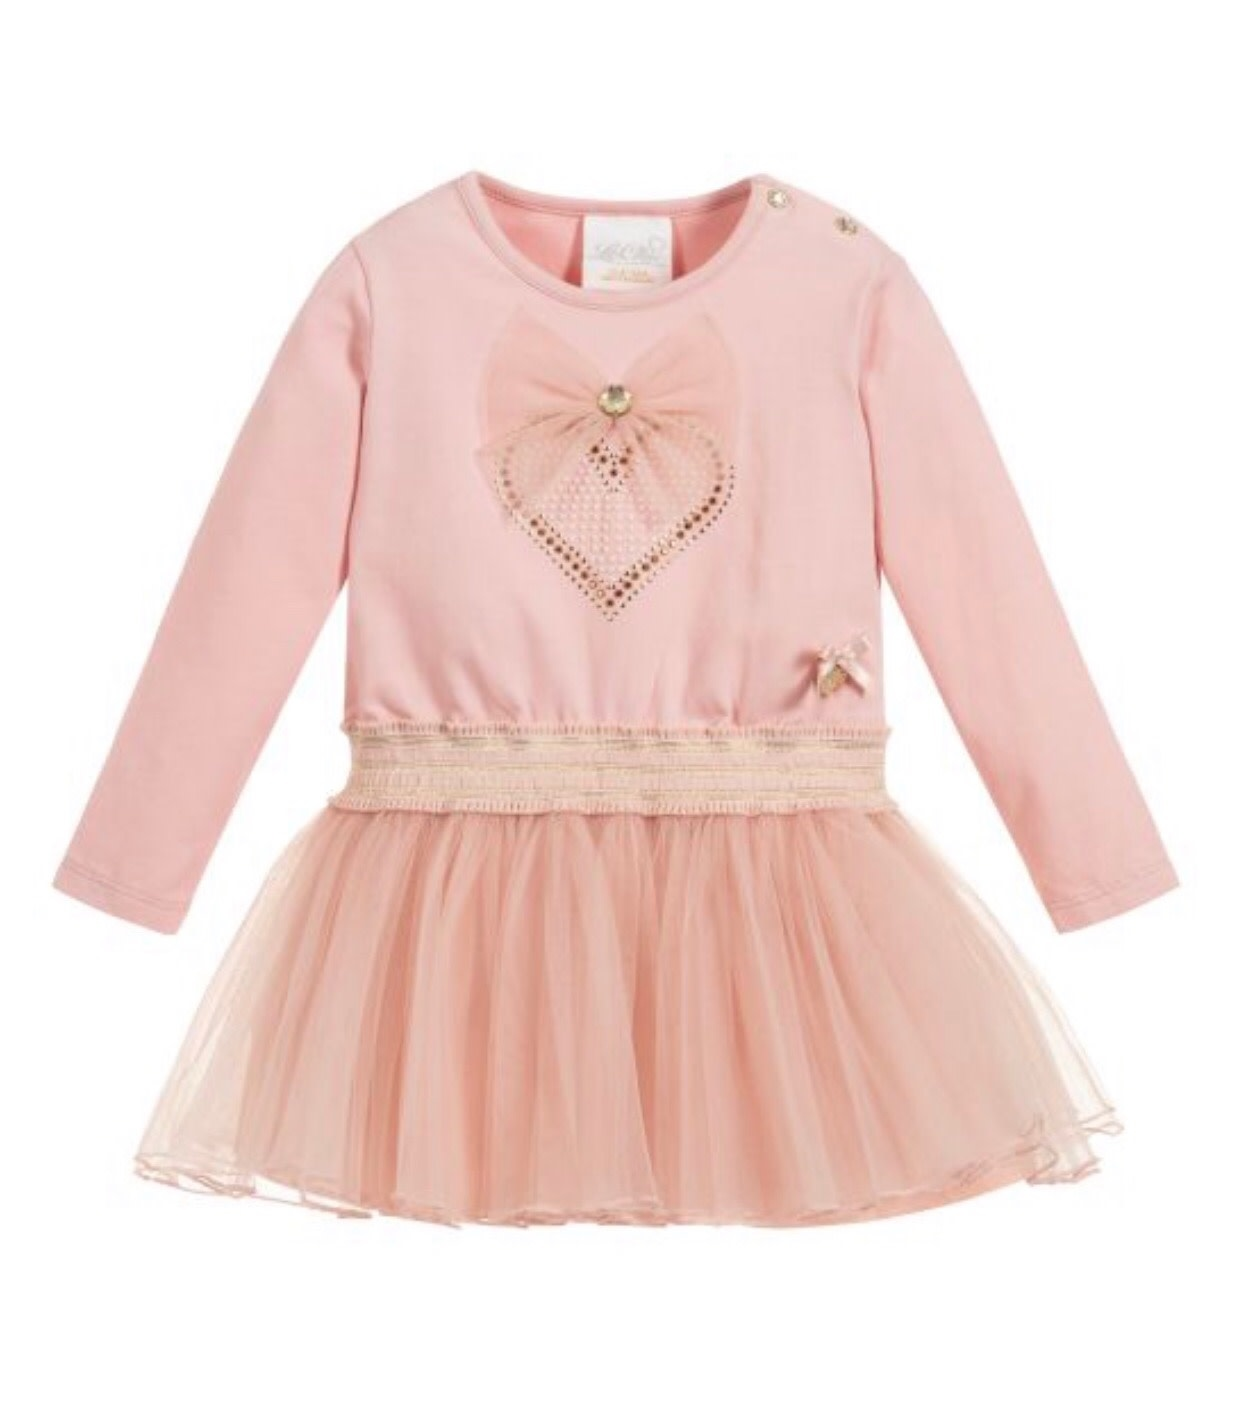 Lechic Le Chic Petticoat Dress With Heart